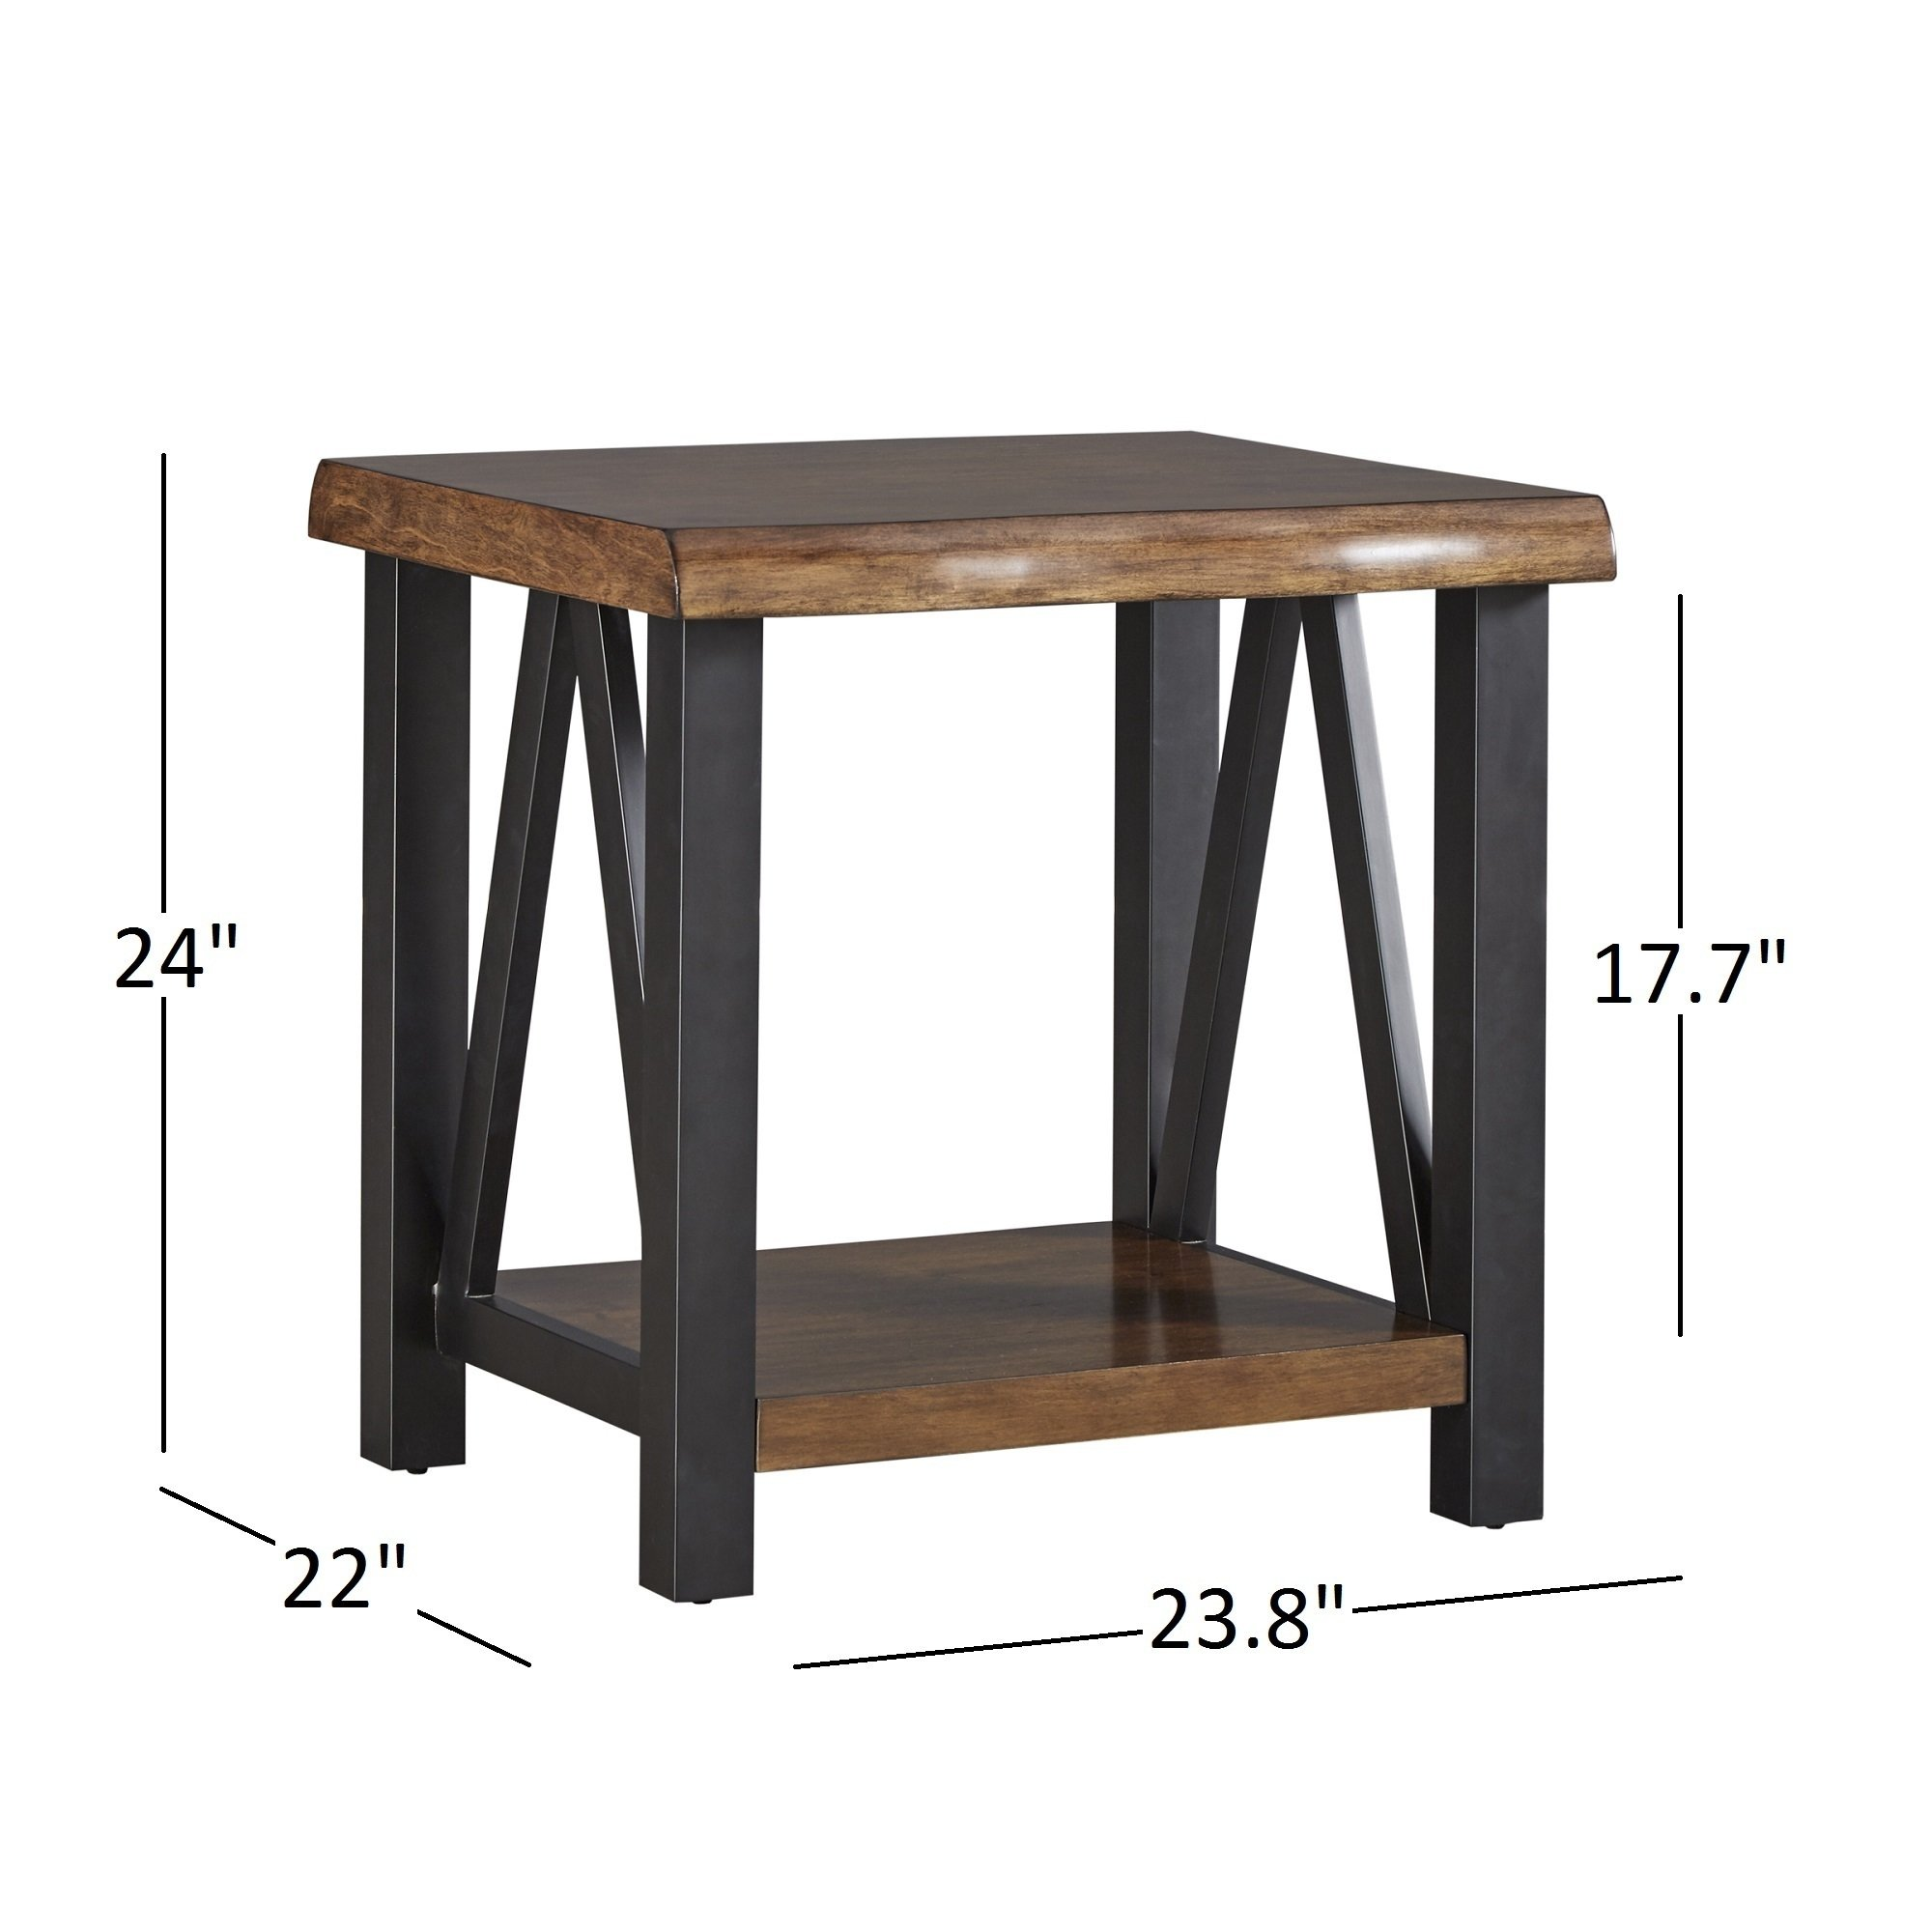 banyan live edge wood and metal accent tables inspire artisan table free shipping today pine desk living room essentials mini drawers upholstered dining chairs small bench